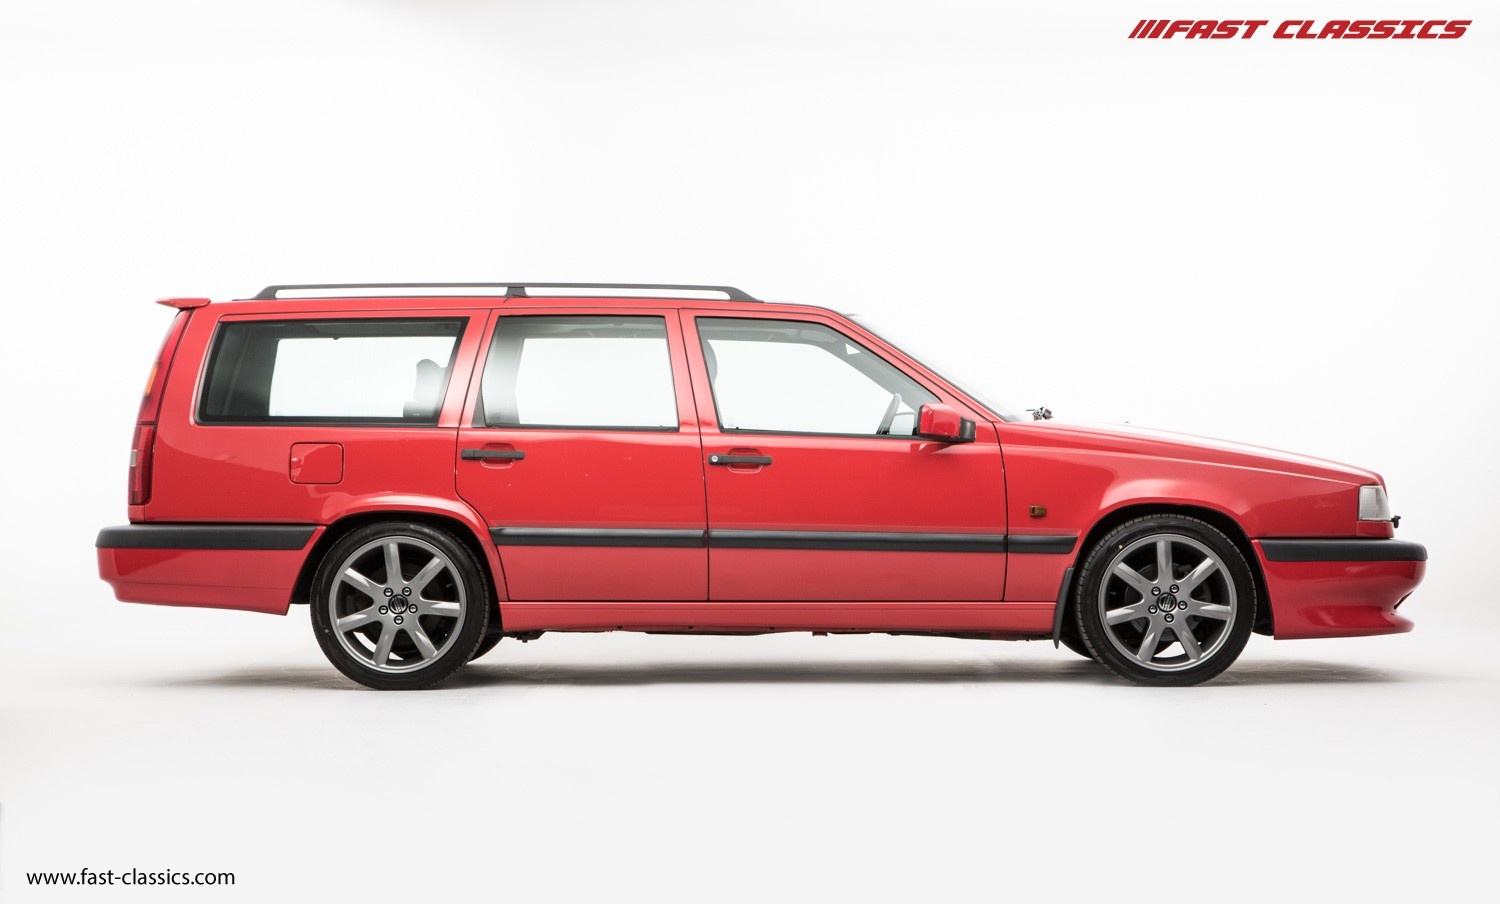 and hi res shmoo ltd beautiful img for volvo sale wagon product turbocharged automotive pics video rare